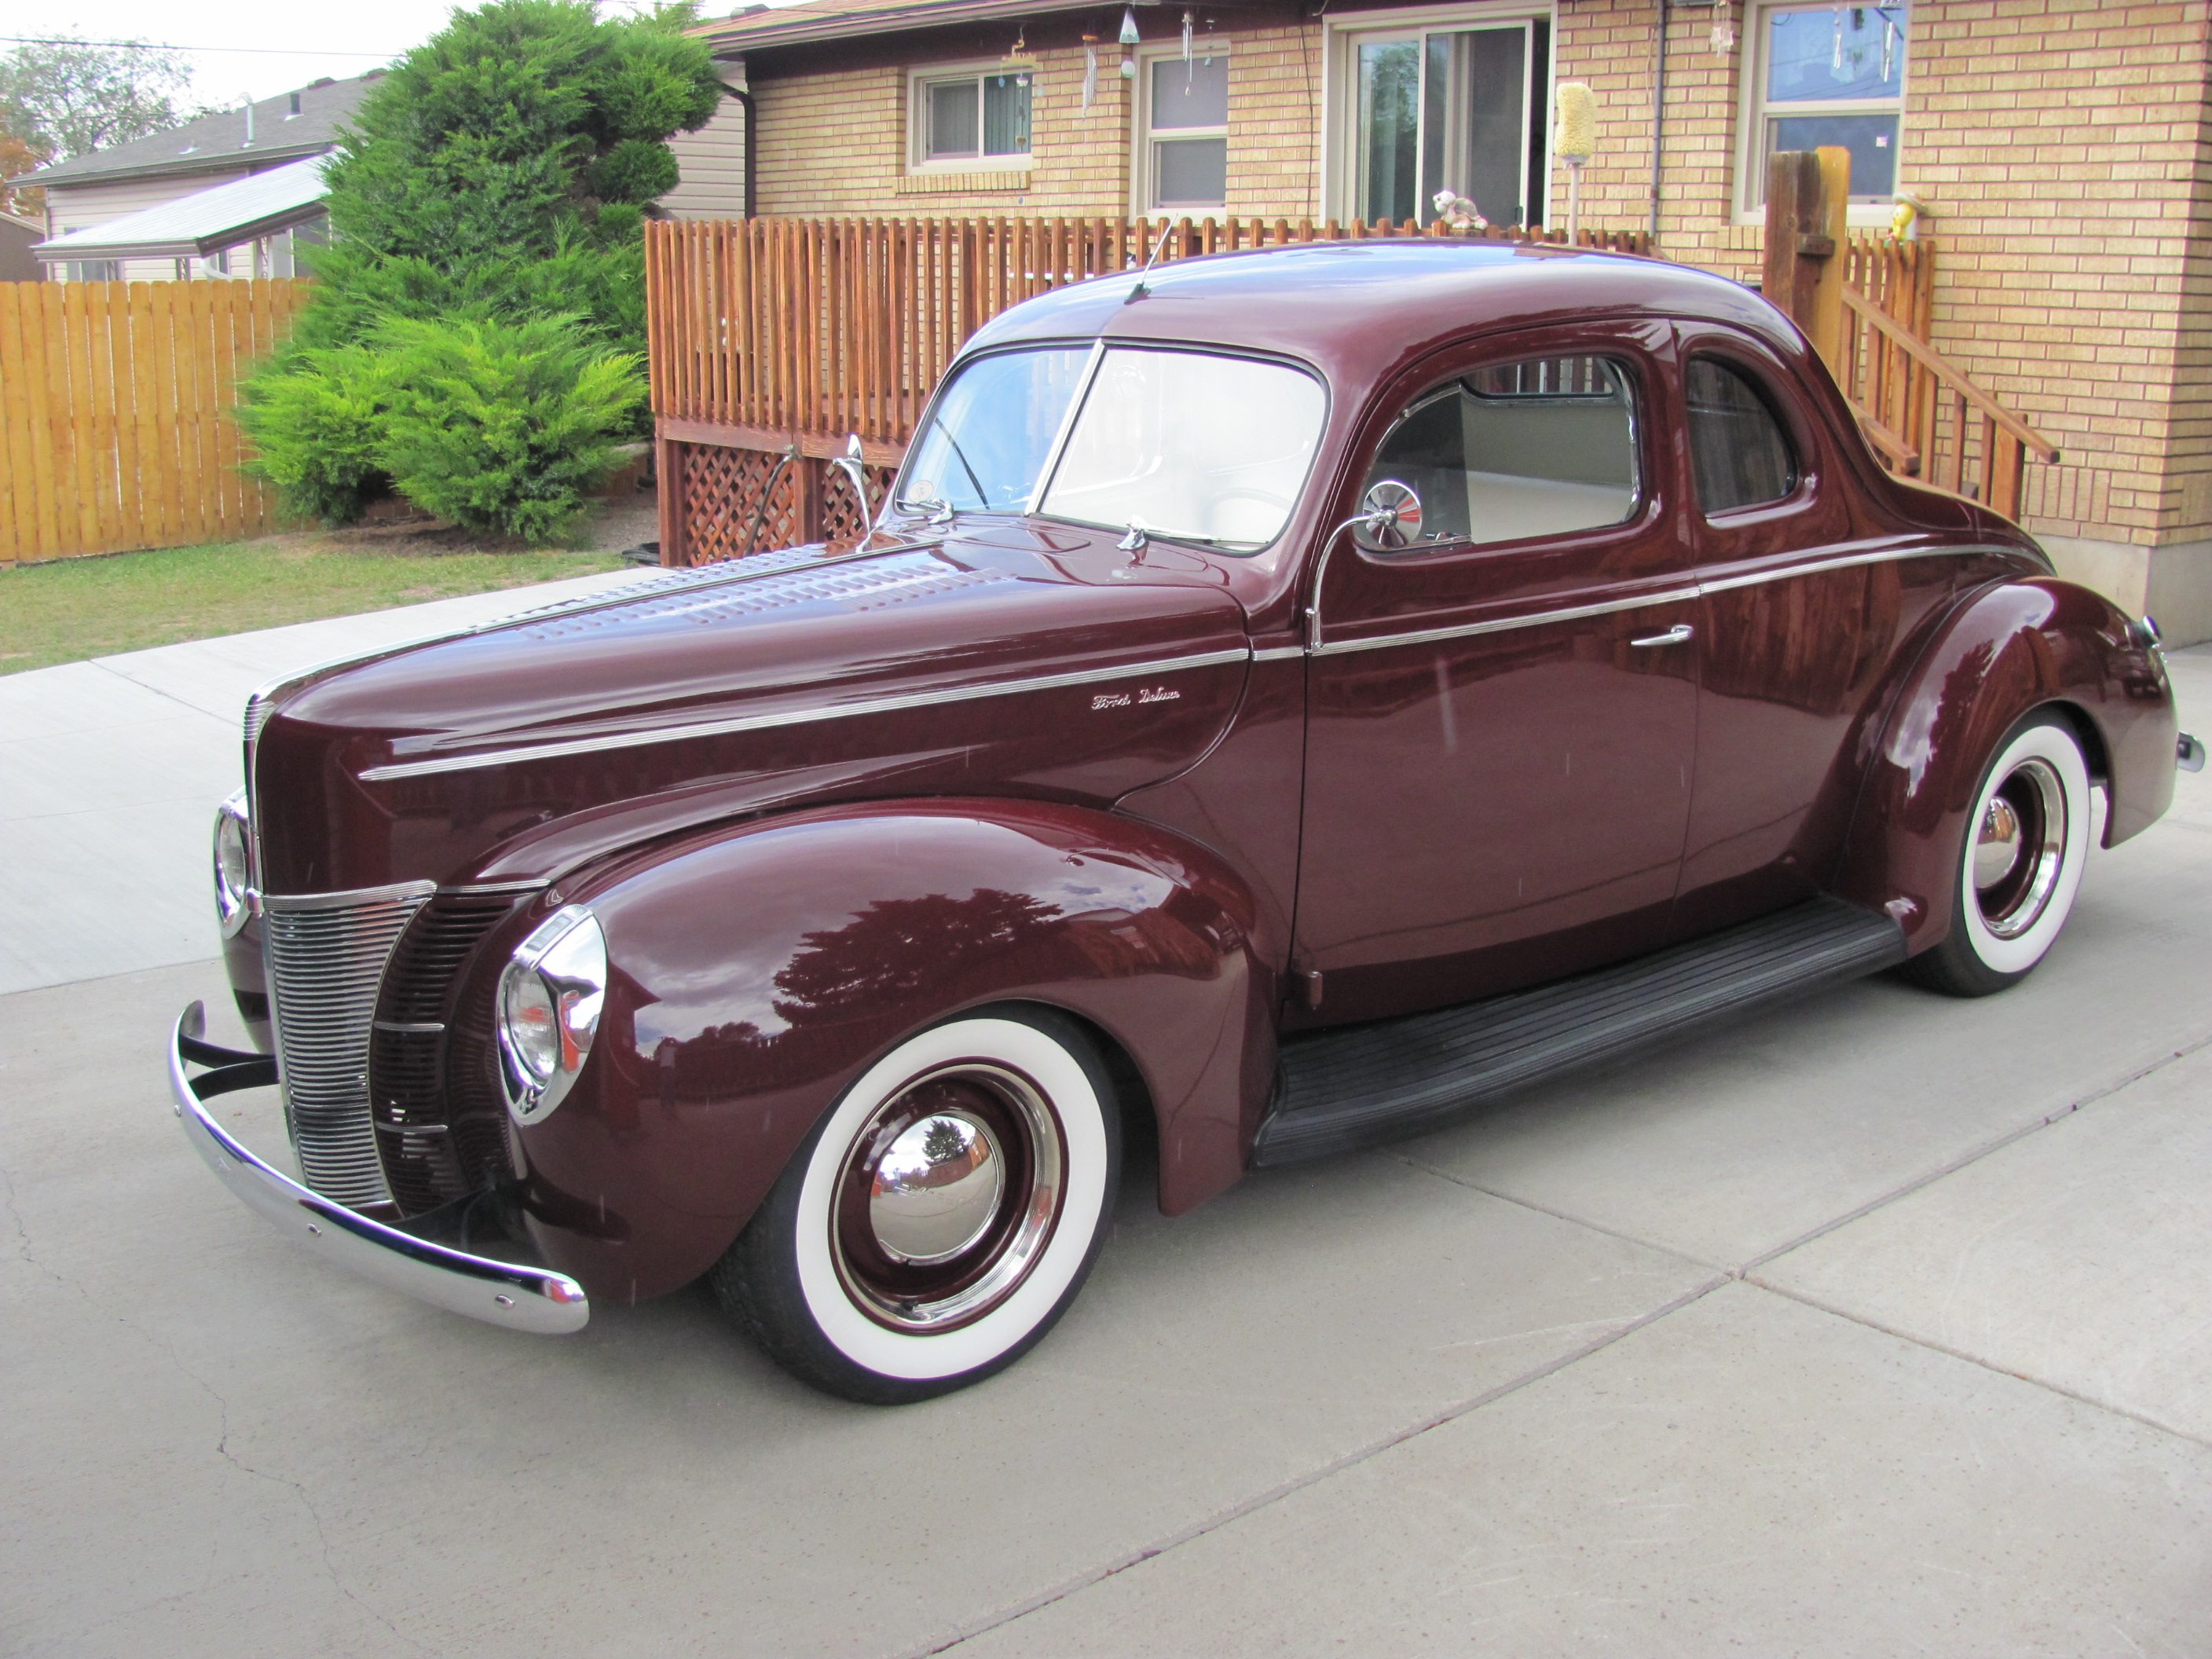 Car Paint Colors >> Technical - Best 39/40 Ford Deluxe Colors | The H.A.M.B.